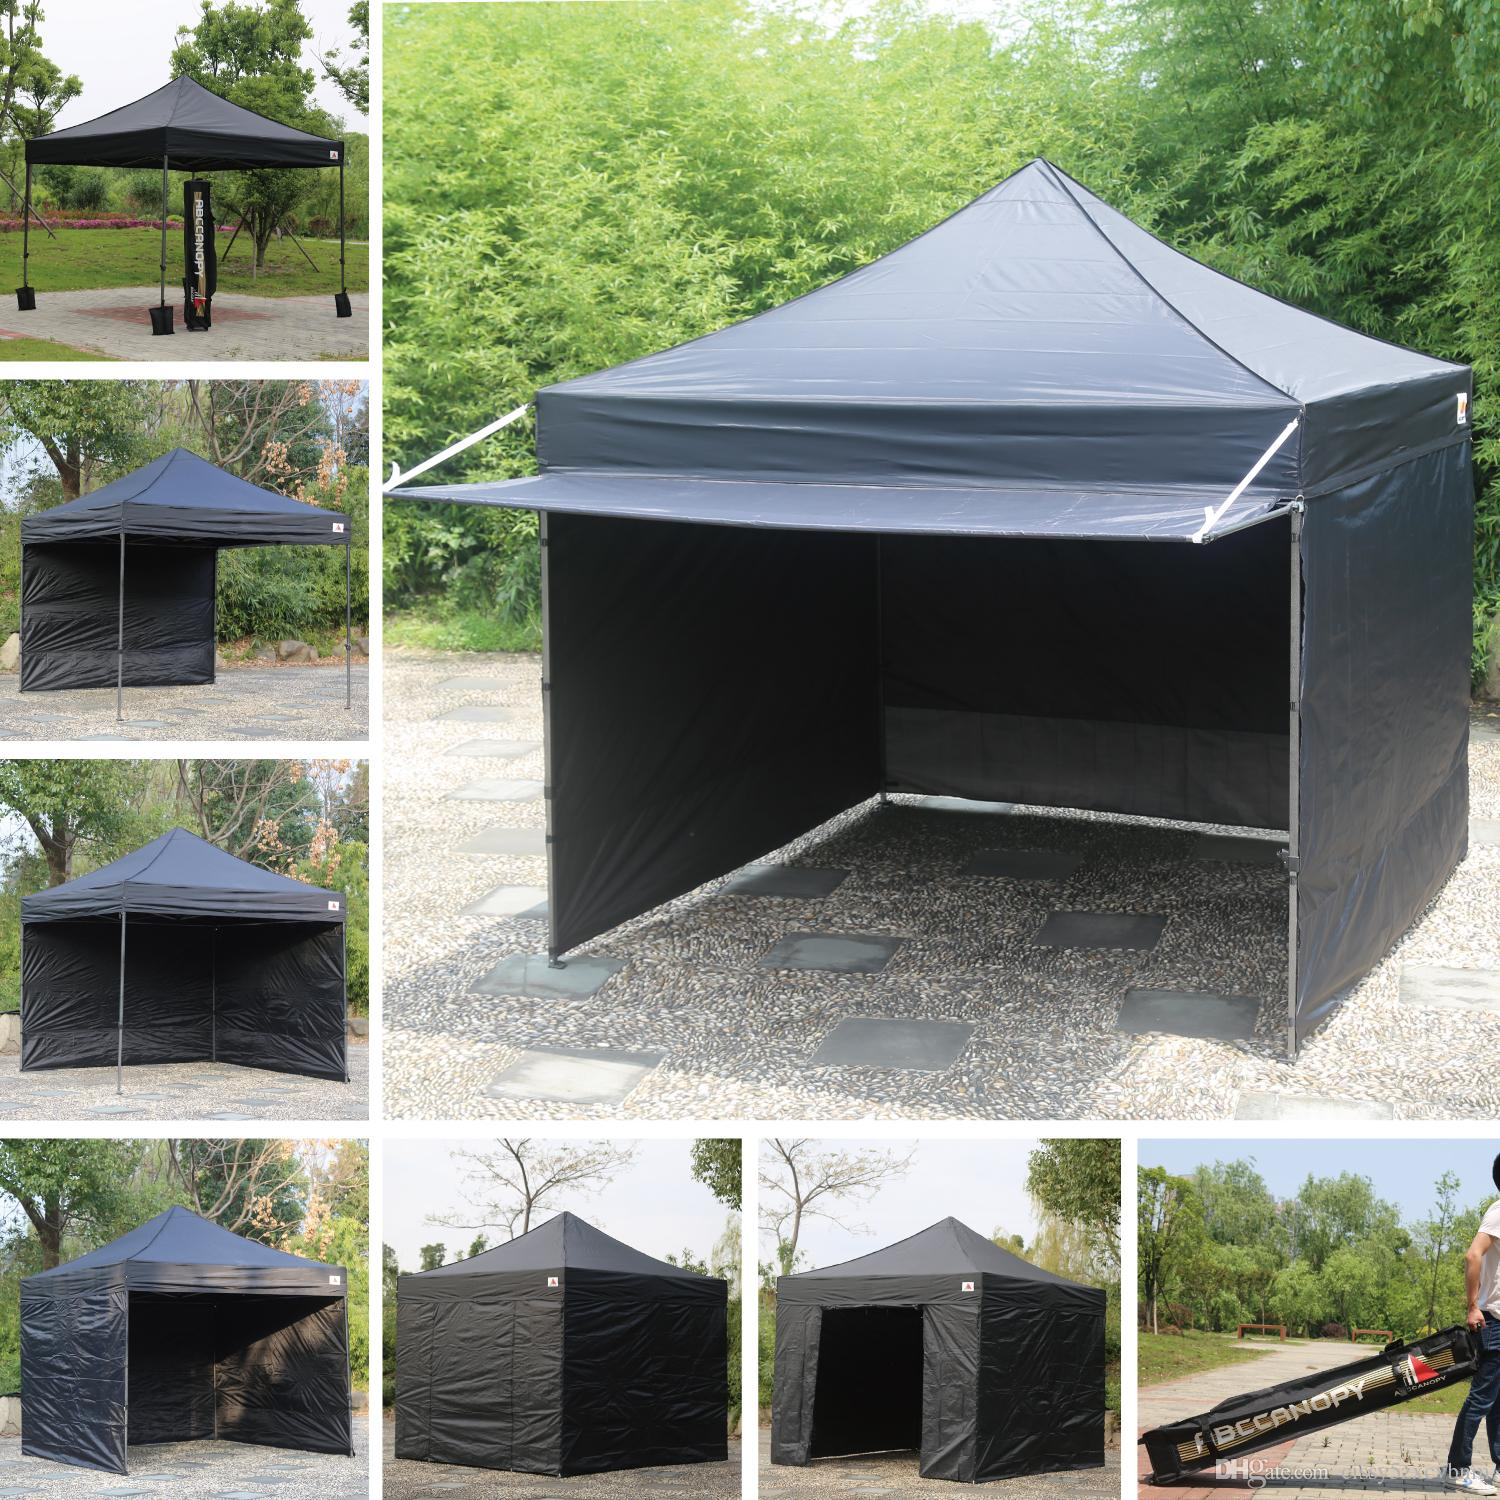 2018 10x10 Abccanopy Easy Pop Up Canopy Tent Instant Shelter Deluxe Portable Market Canopy Awning Black From Cissy5zxcvbnm $241.16 | Dhgate.Com & 2018 10x10 Abccanopy Easy Pop Up Canopy Tent Instant Shelter ...